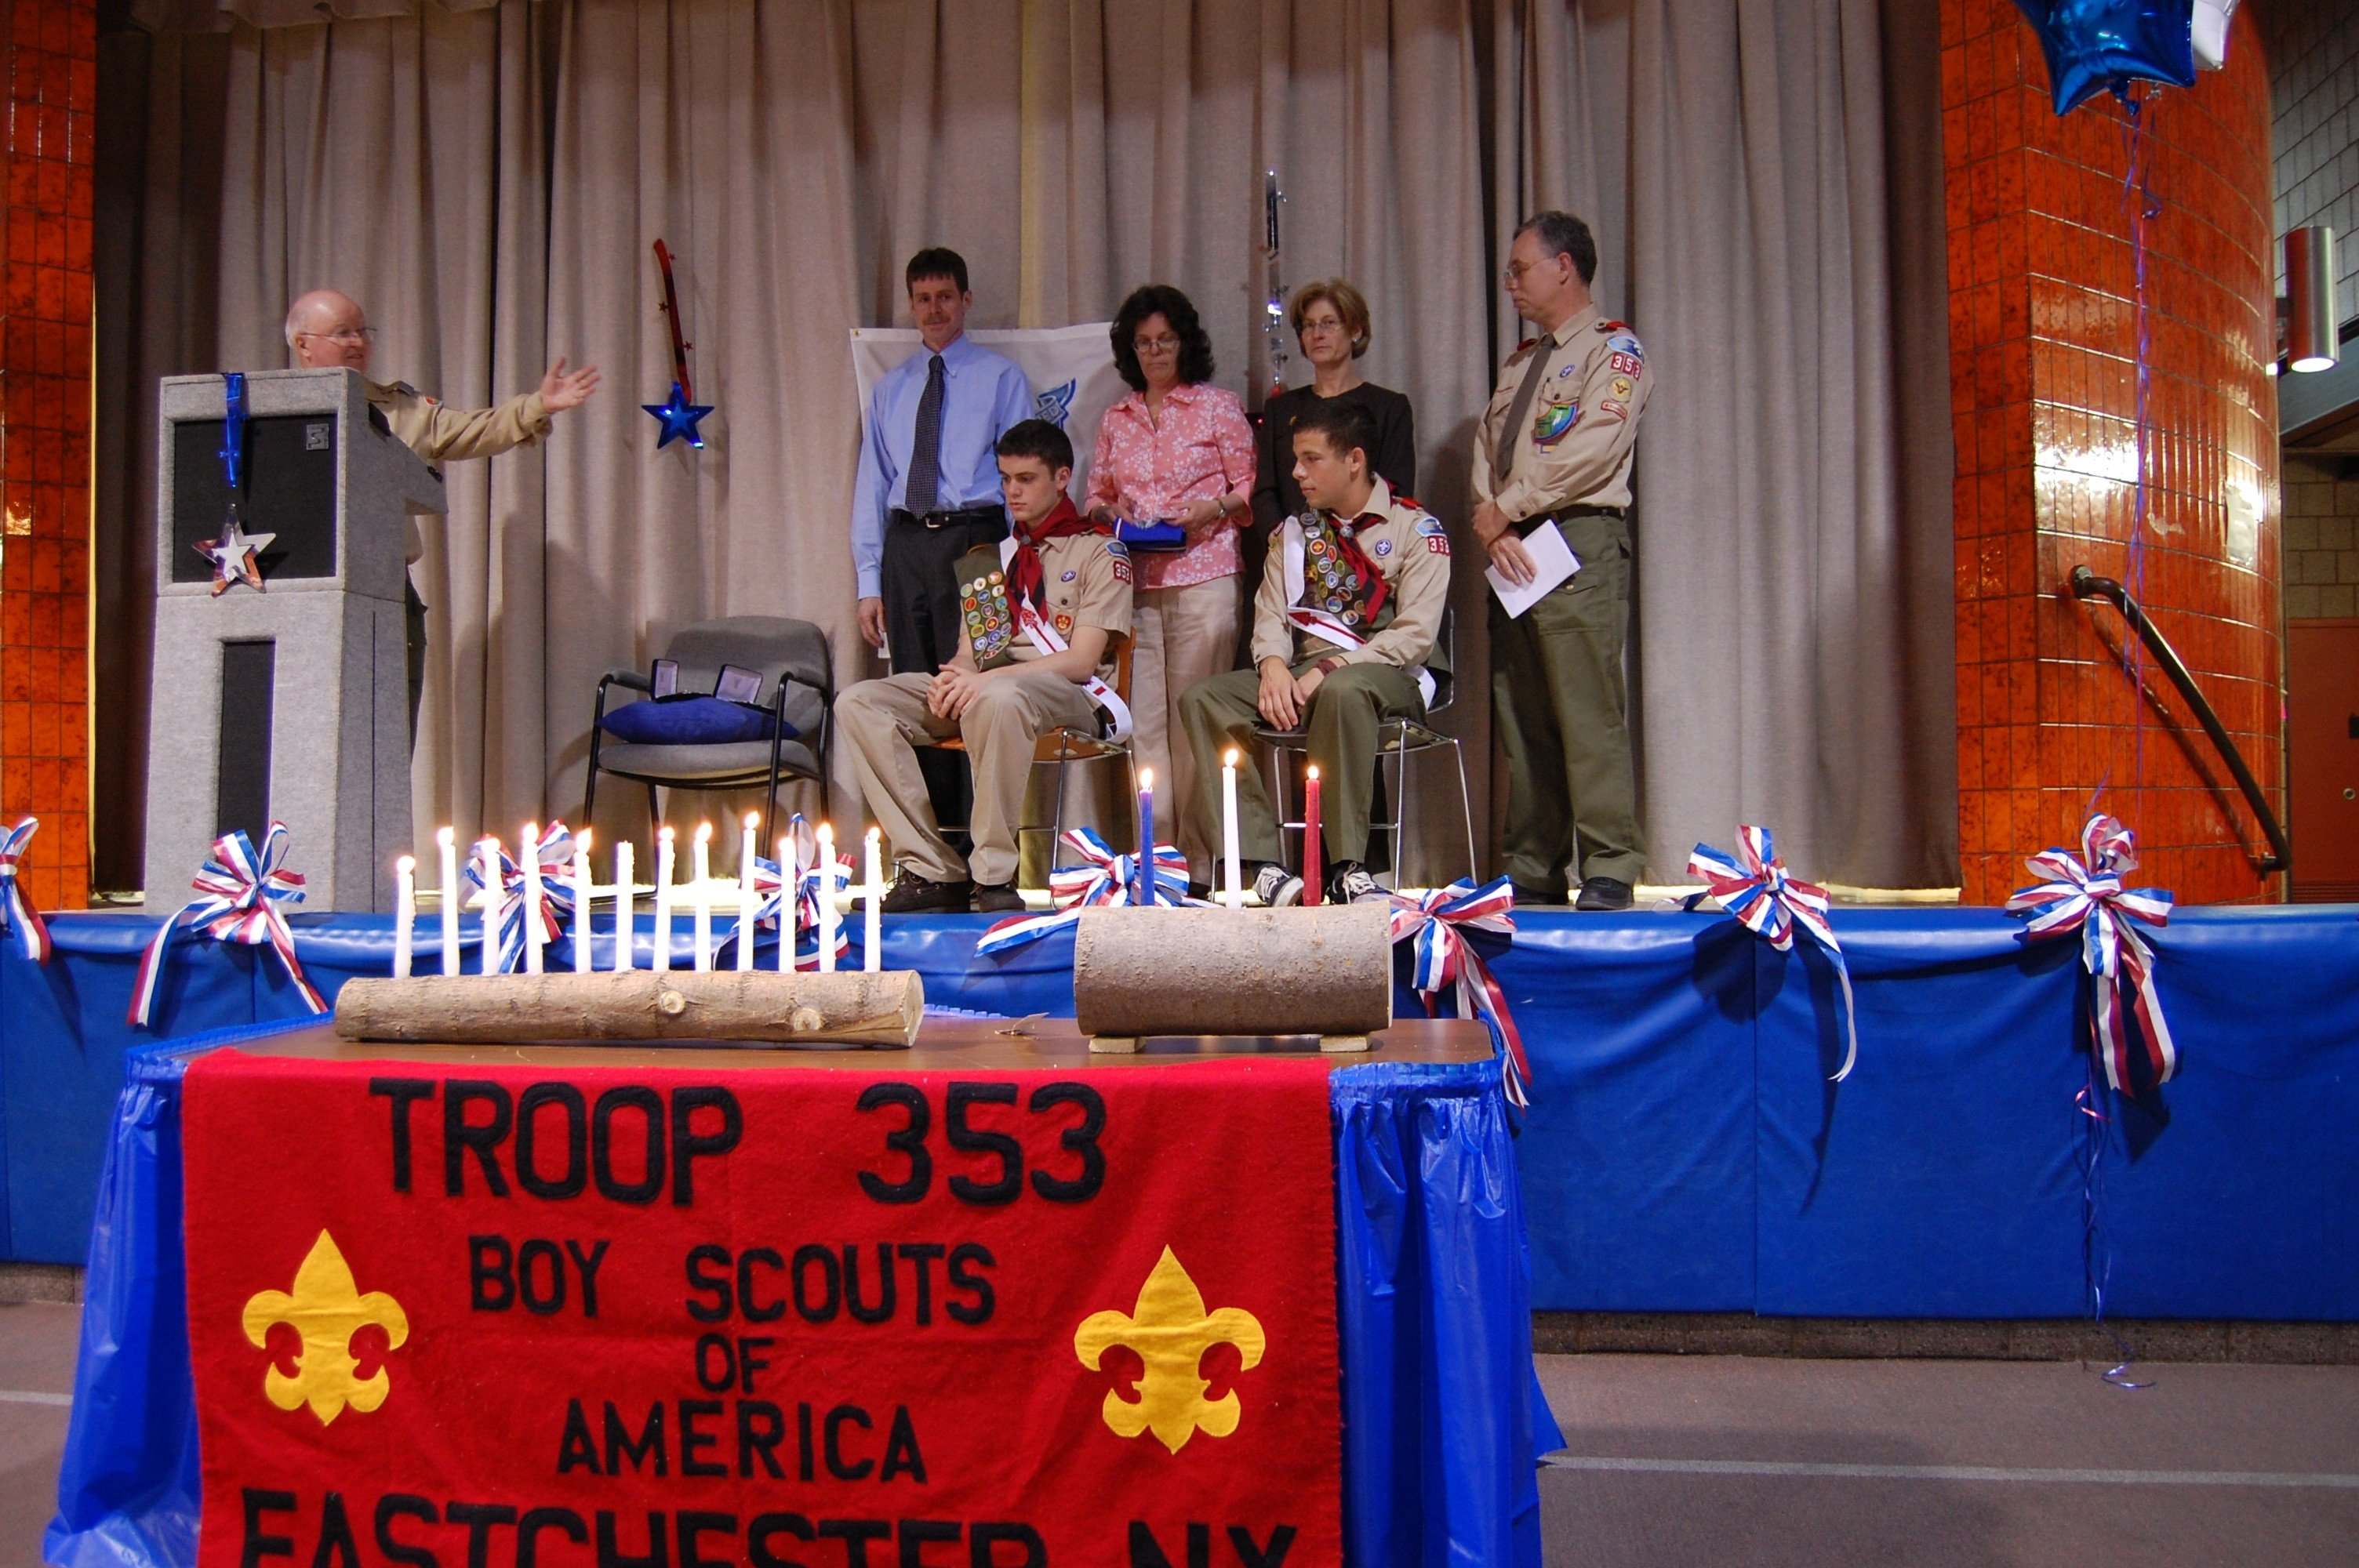 10 Spectacular Boy Scout Court Of Honor Ideas eagle scout court of honor the ultimate scouting achievement